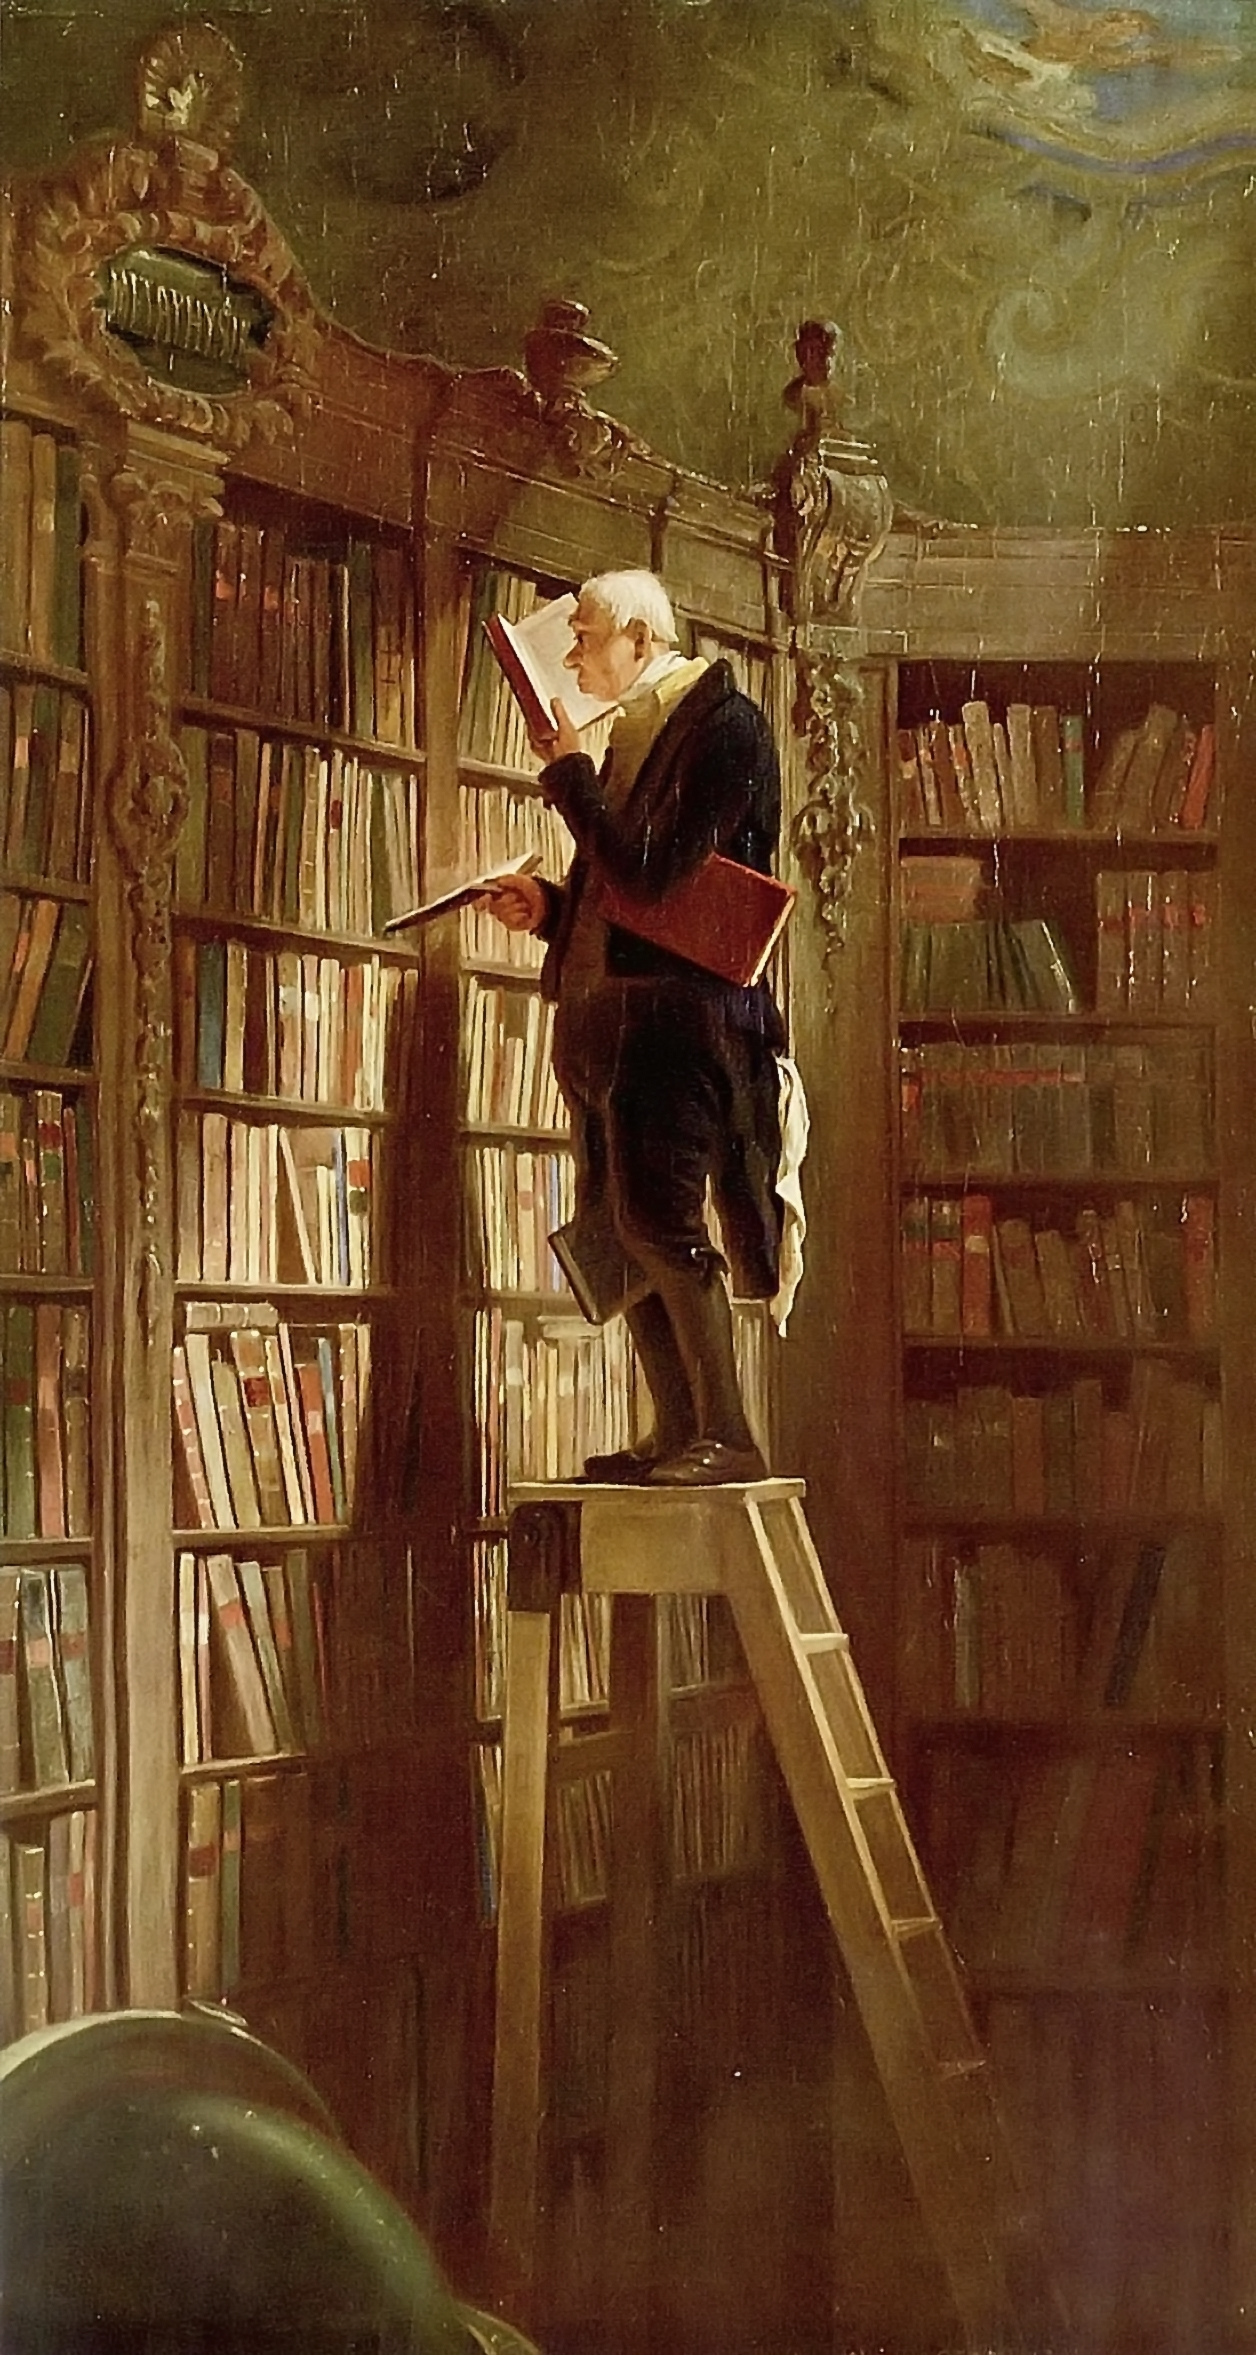 The Bookworm, by Carl Spitzweg